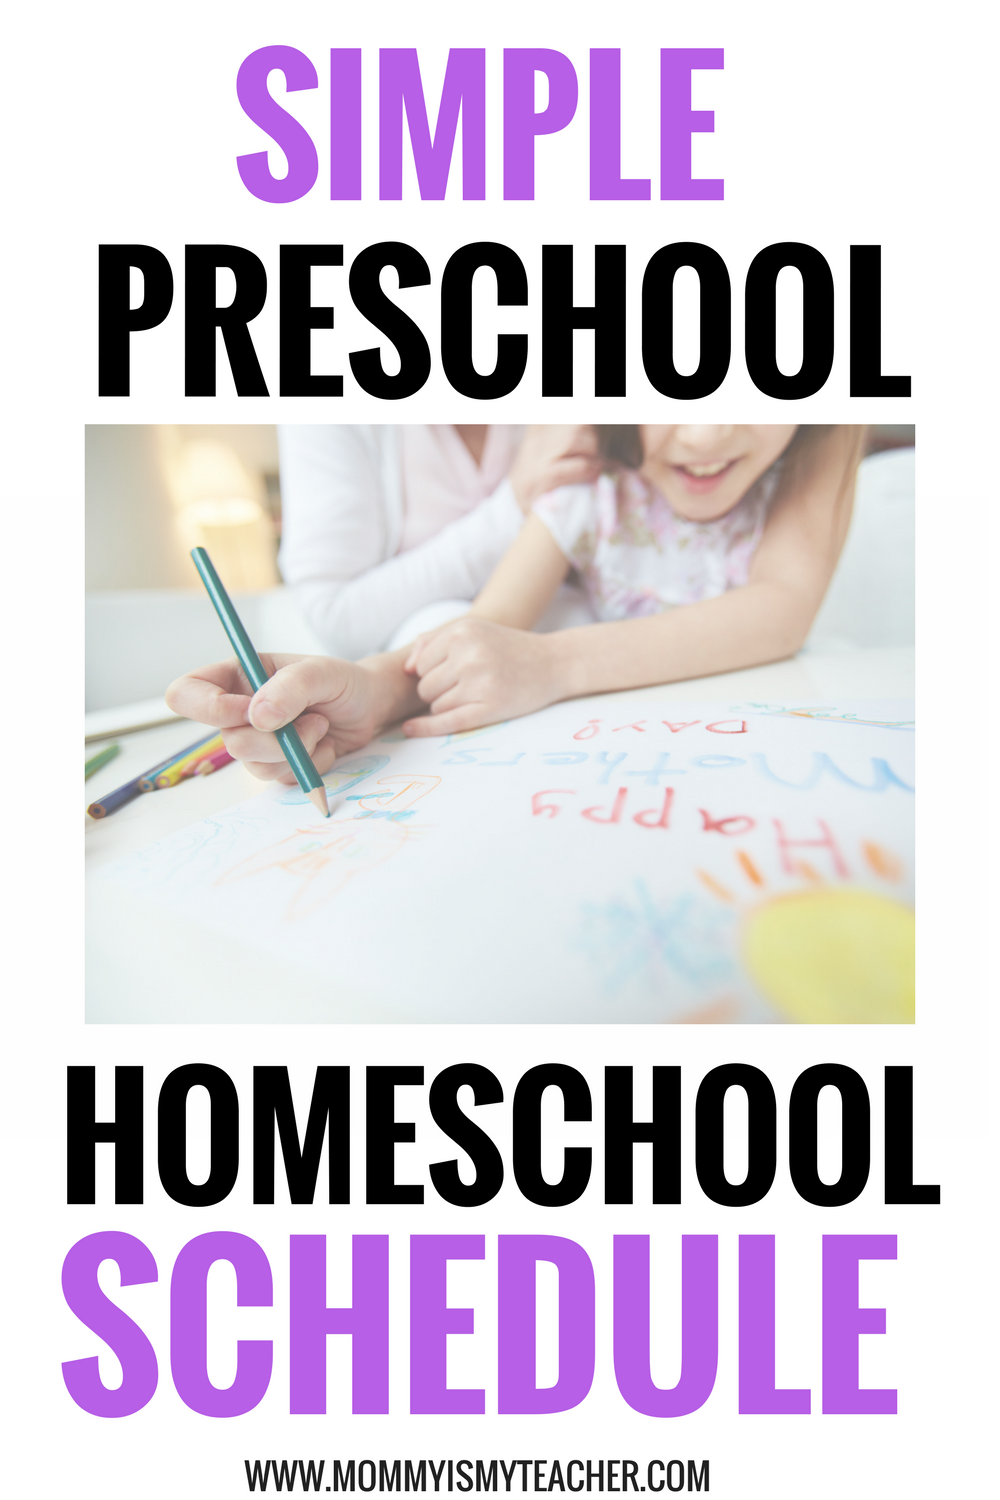 Wow, this preschool homeschool schedule is so simple and easy to follow! This makes my preschool homeschool curriculum planning a breeze!